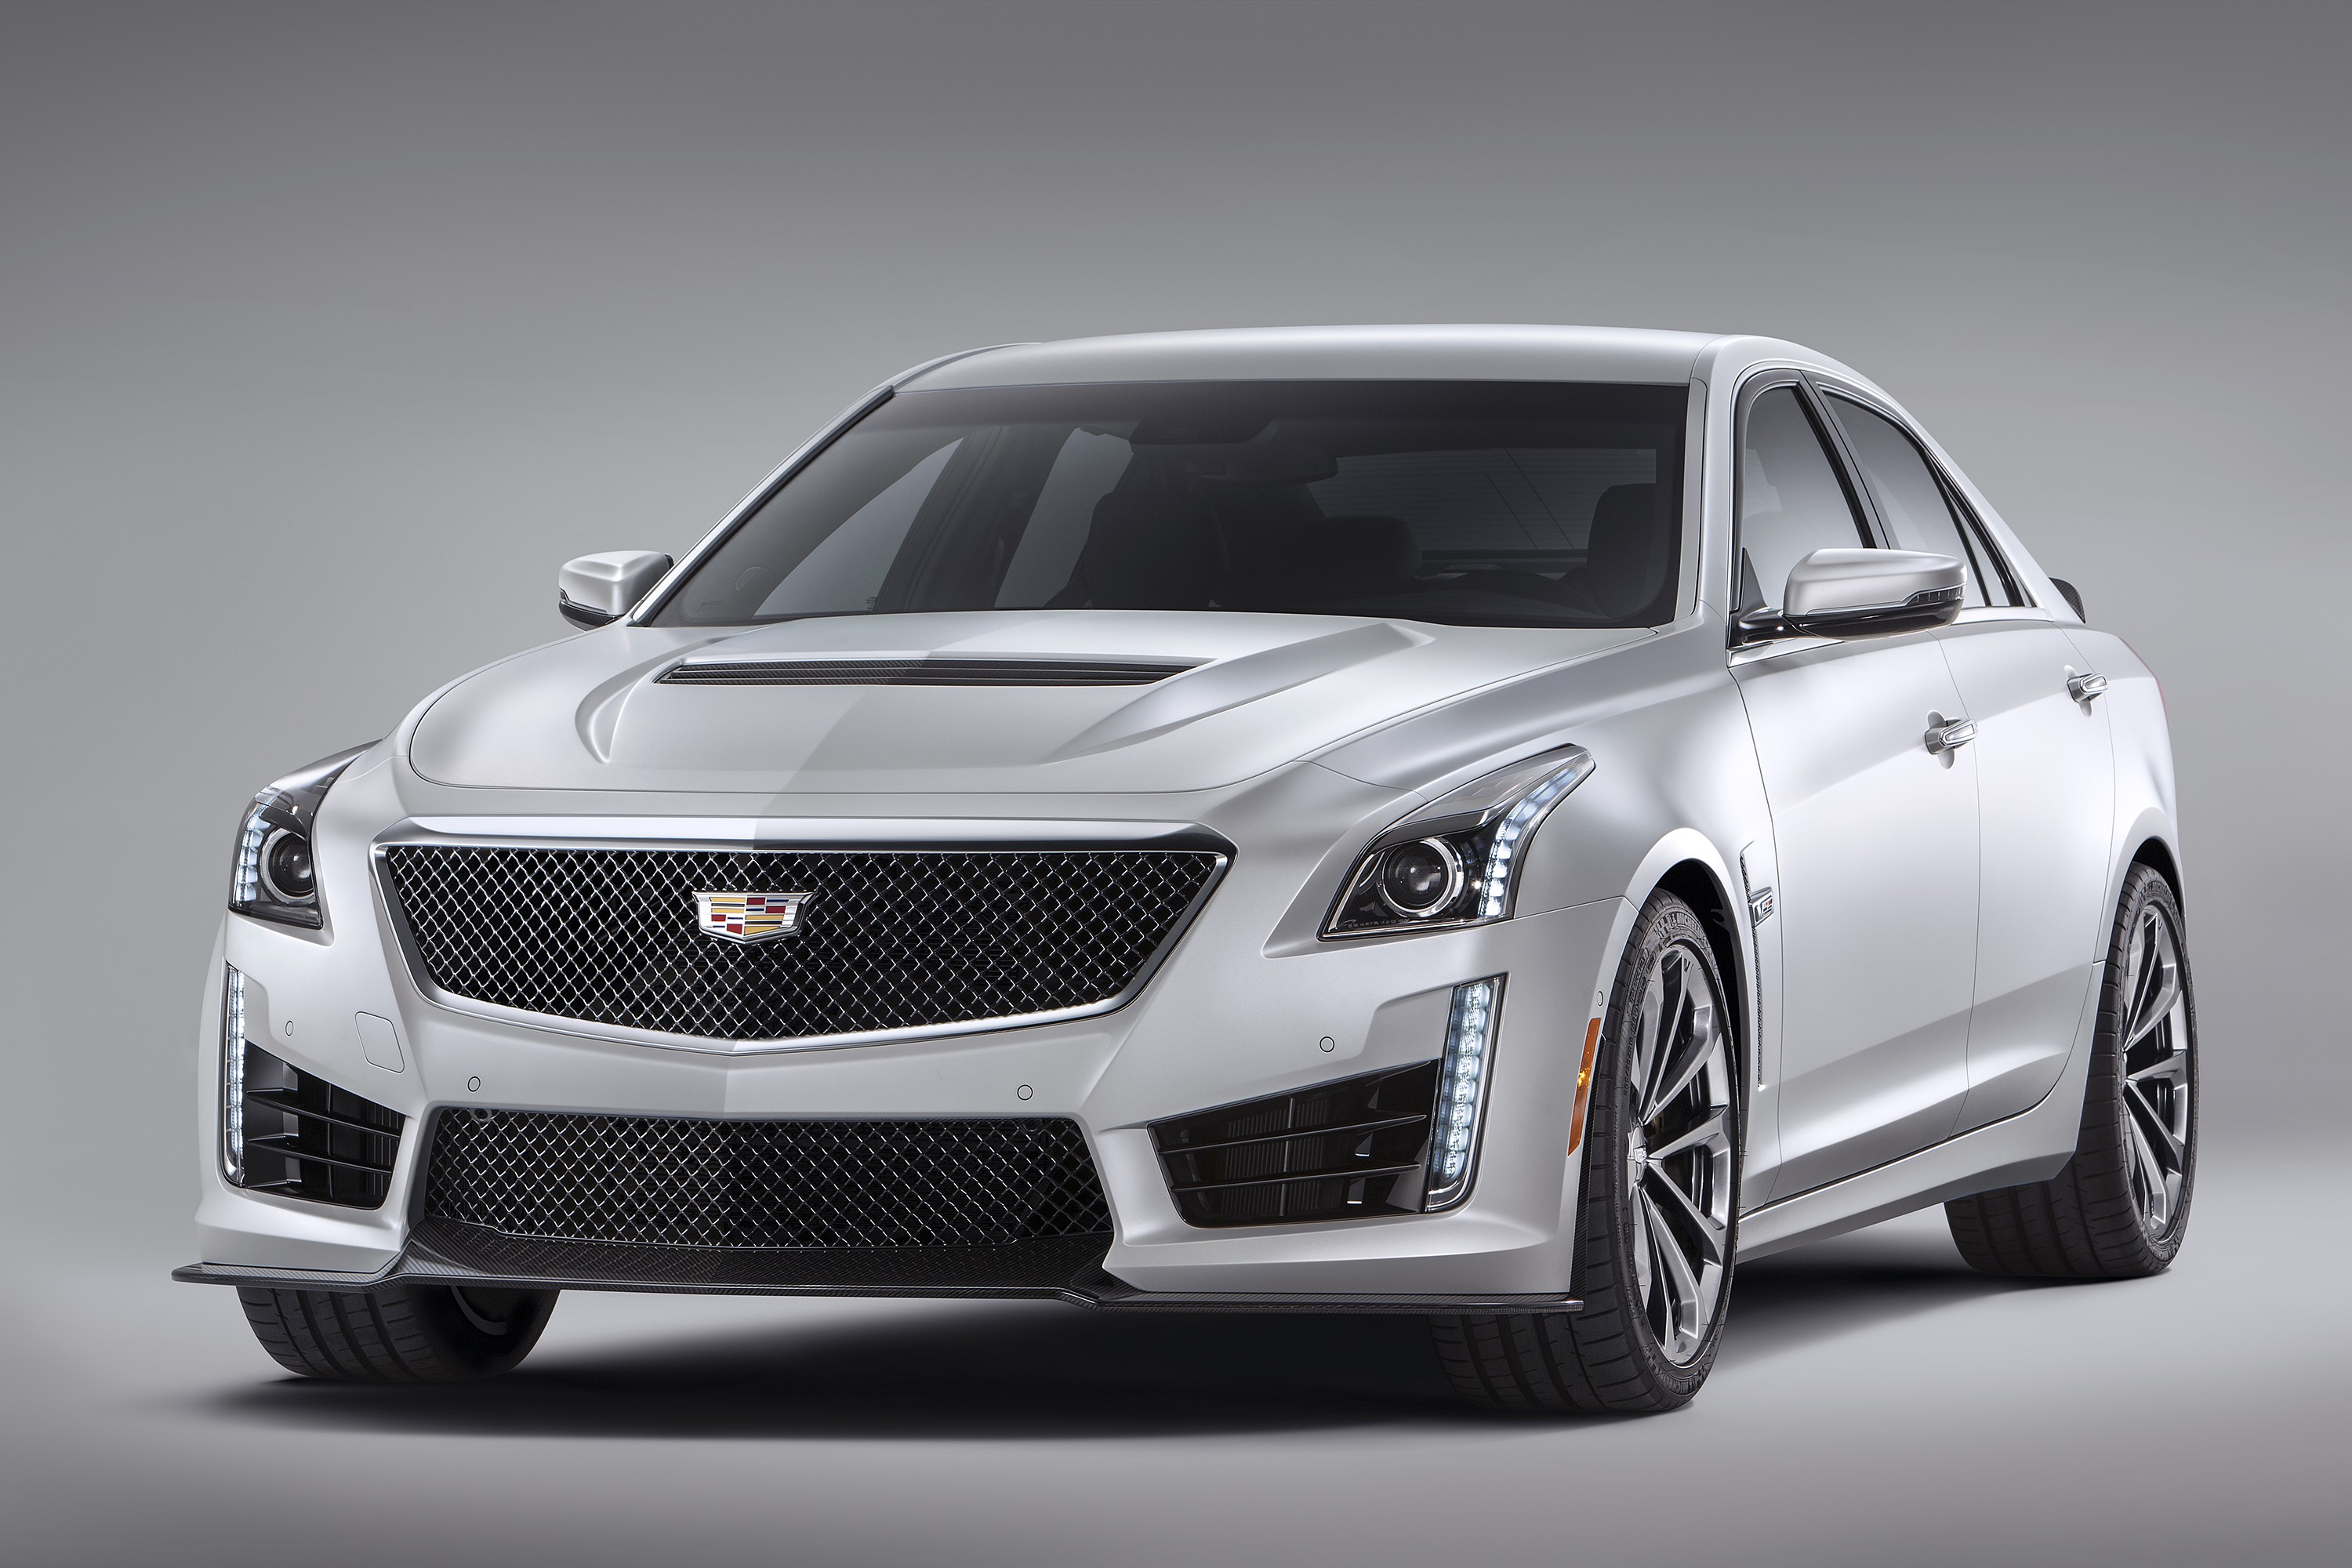 2016 cadillac cts v churns out 640 horsepower from z06 derived v8 video autoevolution. Black Bedroom Furniture Sets. Home Design Ideas